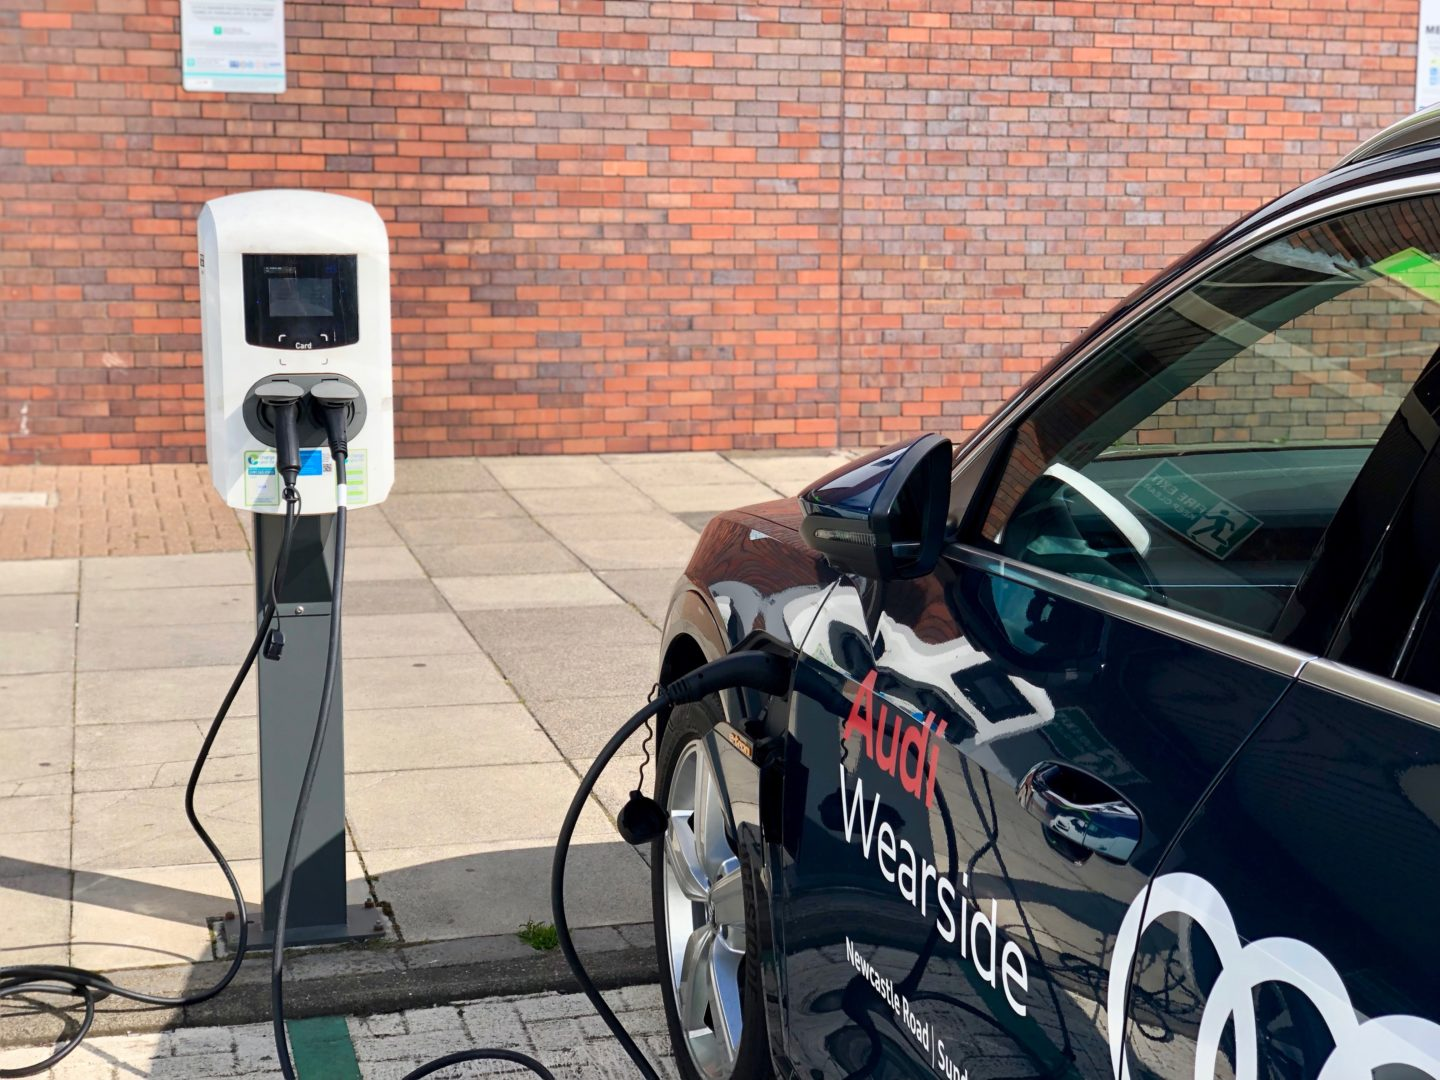 A normal weekend in the North East using an electric car - what's it really like?